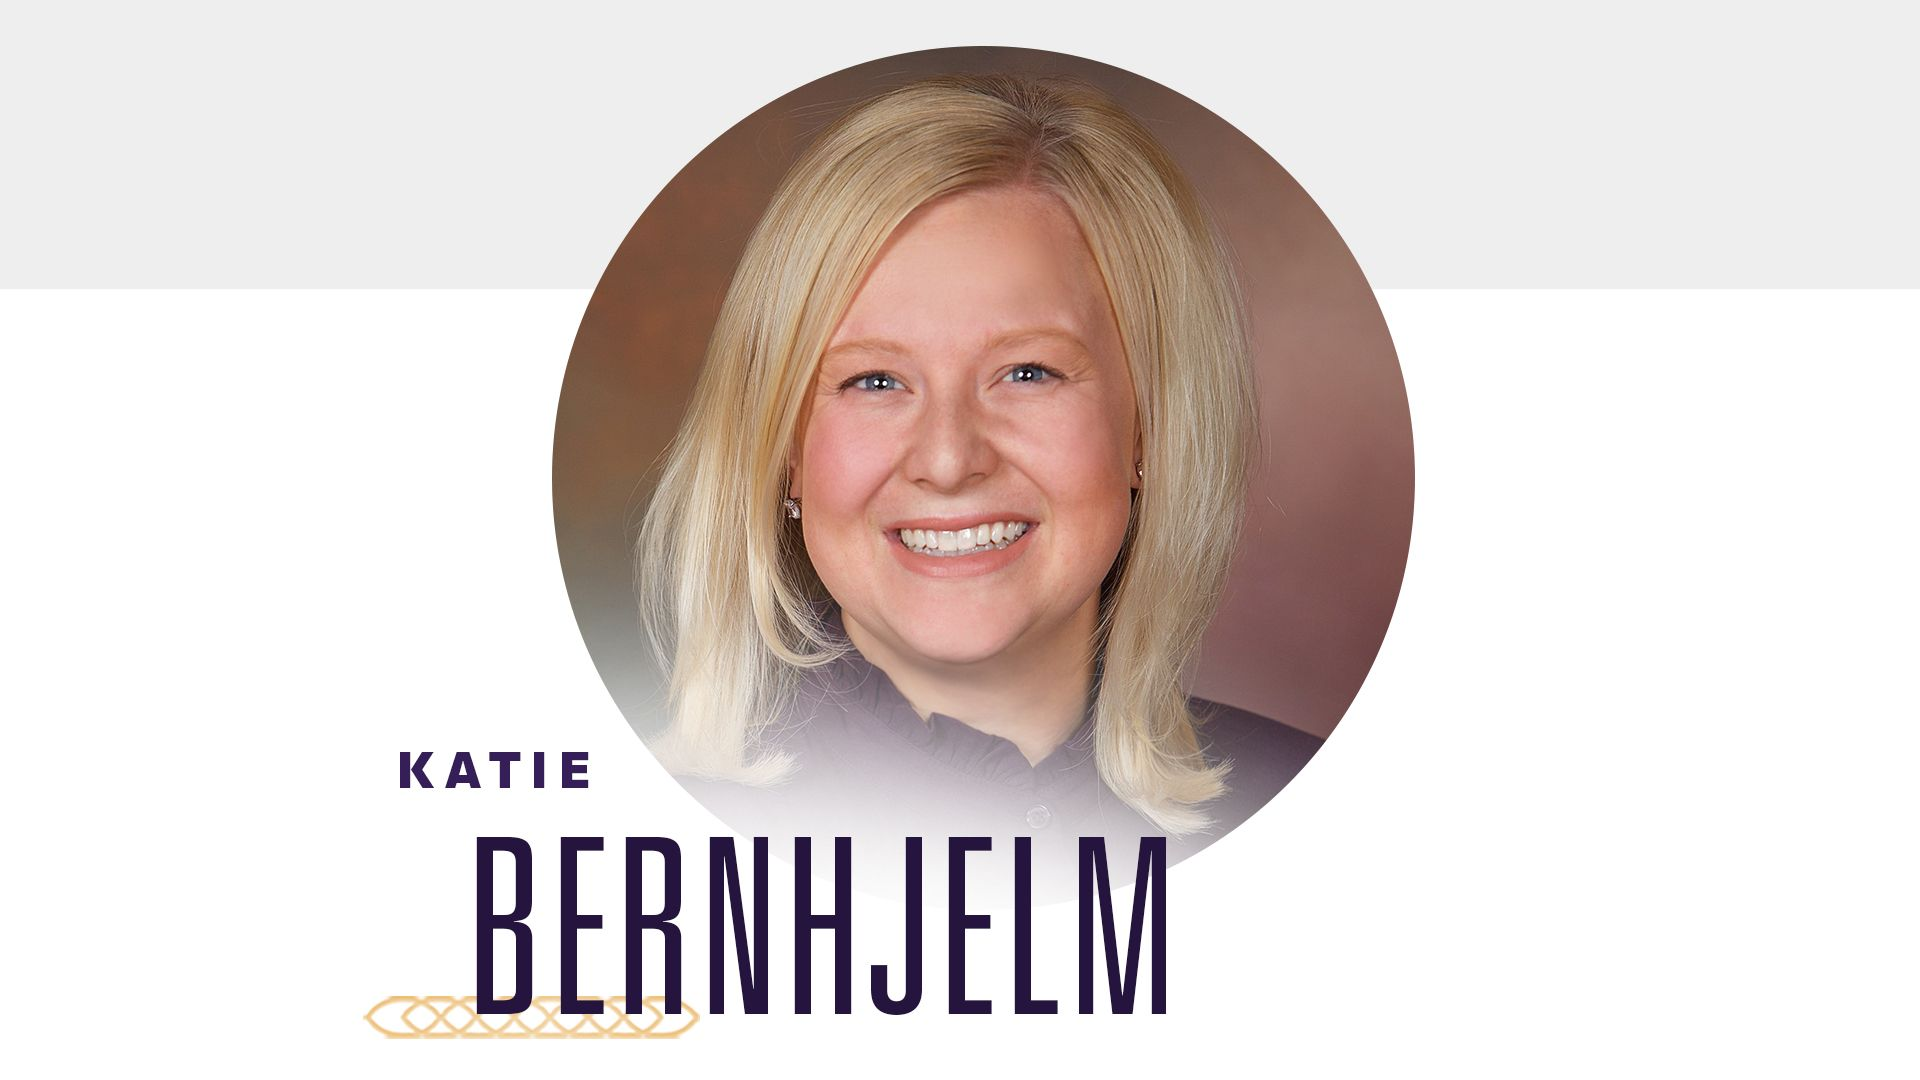 Katie Bernhjelm – Director of Partnership Activation, Minnesota Vikings